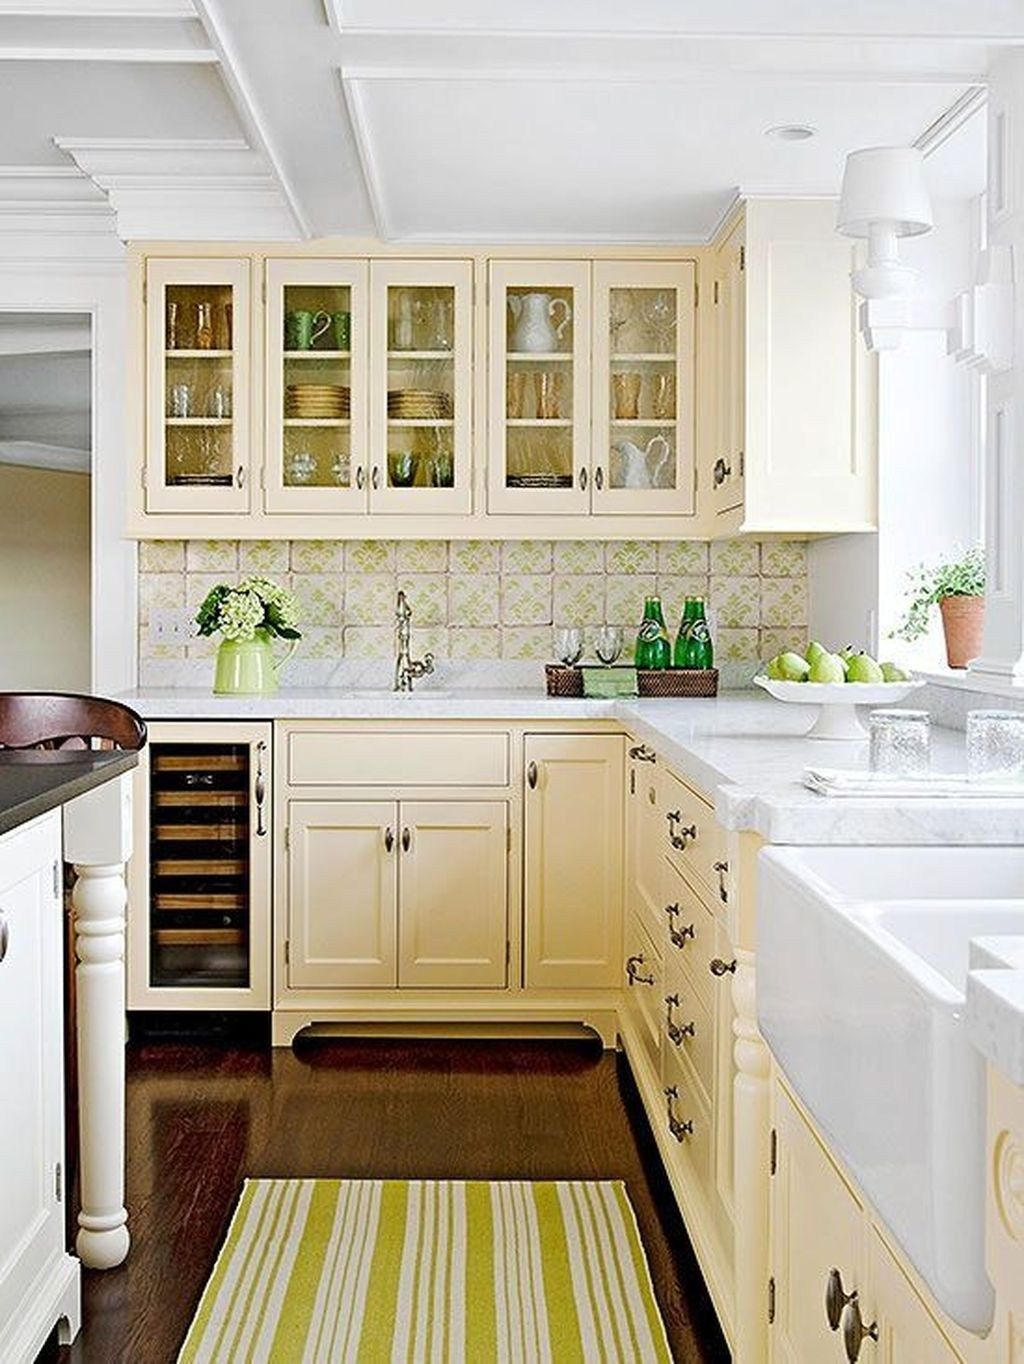 25 Popular And Creative Kitchen Cabinet Color In 2020 Kitchen Cabinet Color Schemes Cottage Kitchen Design Cream Kitchen Cabinets